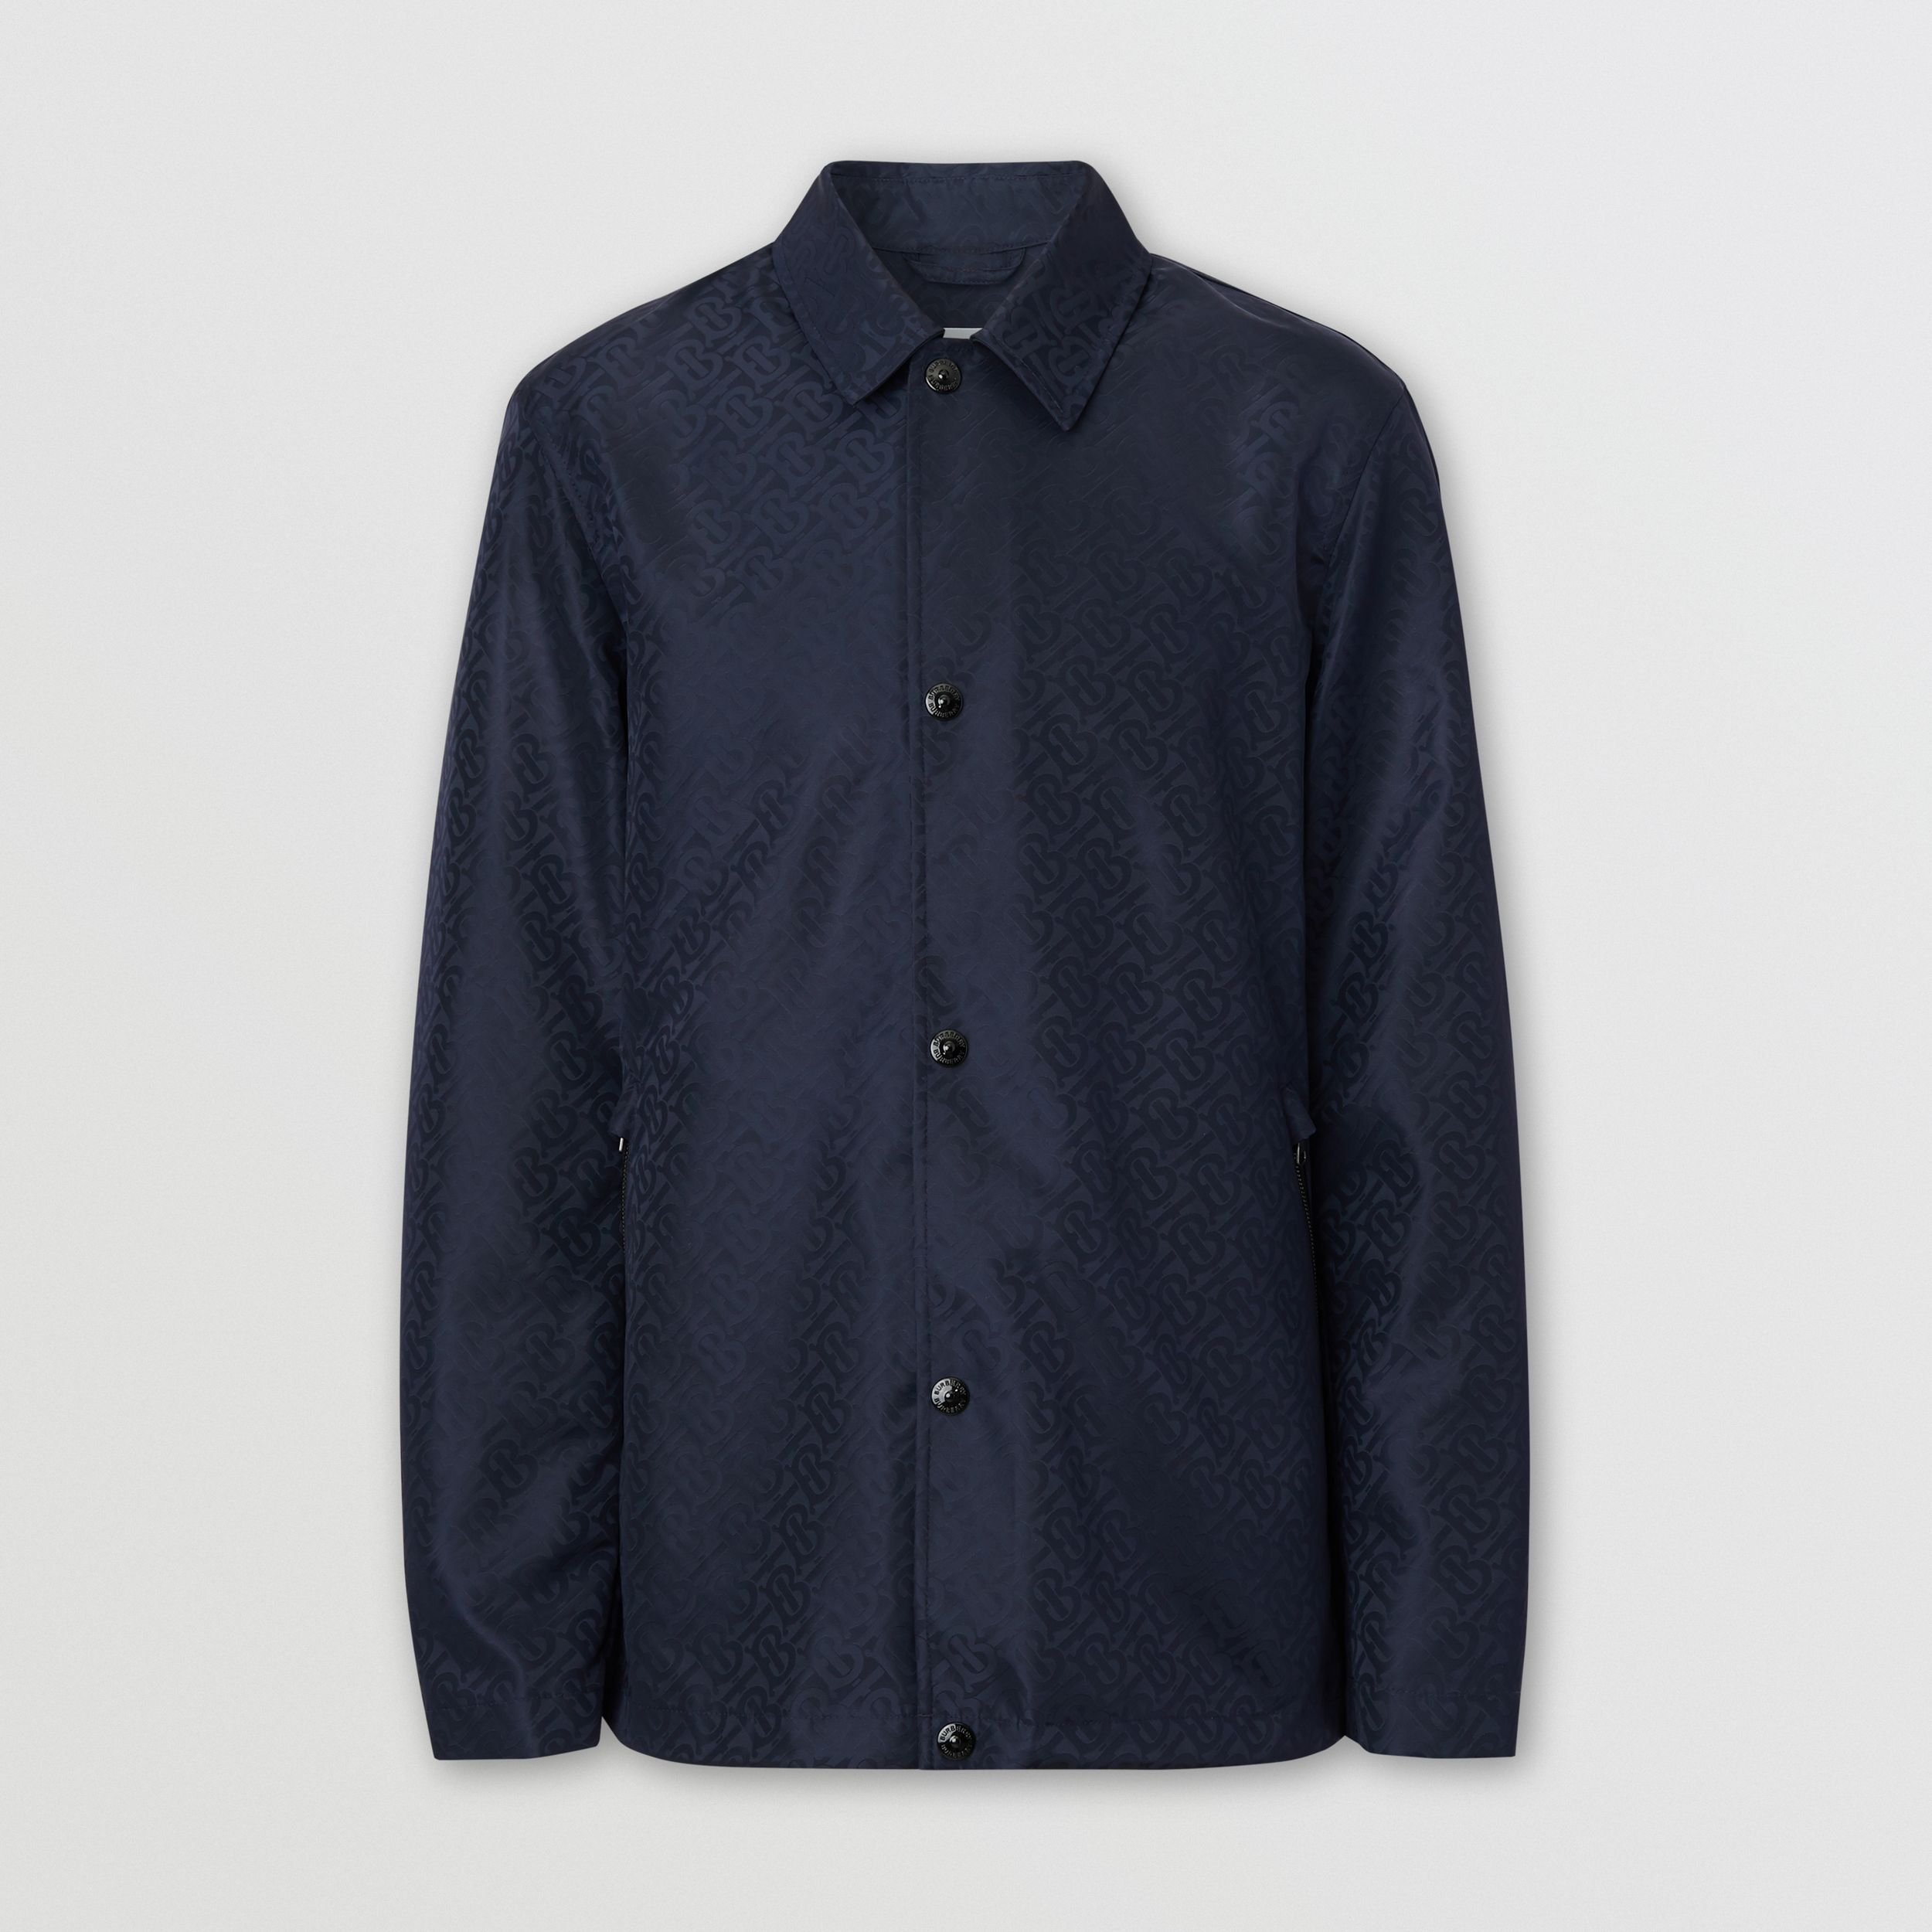 Monogram ECONYL® Jacket in Navy - Men | Burberry Canada - 4